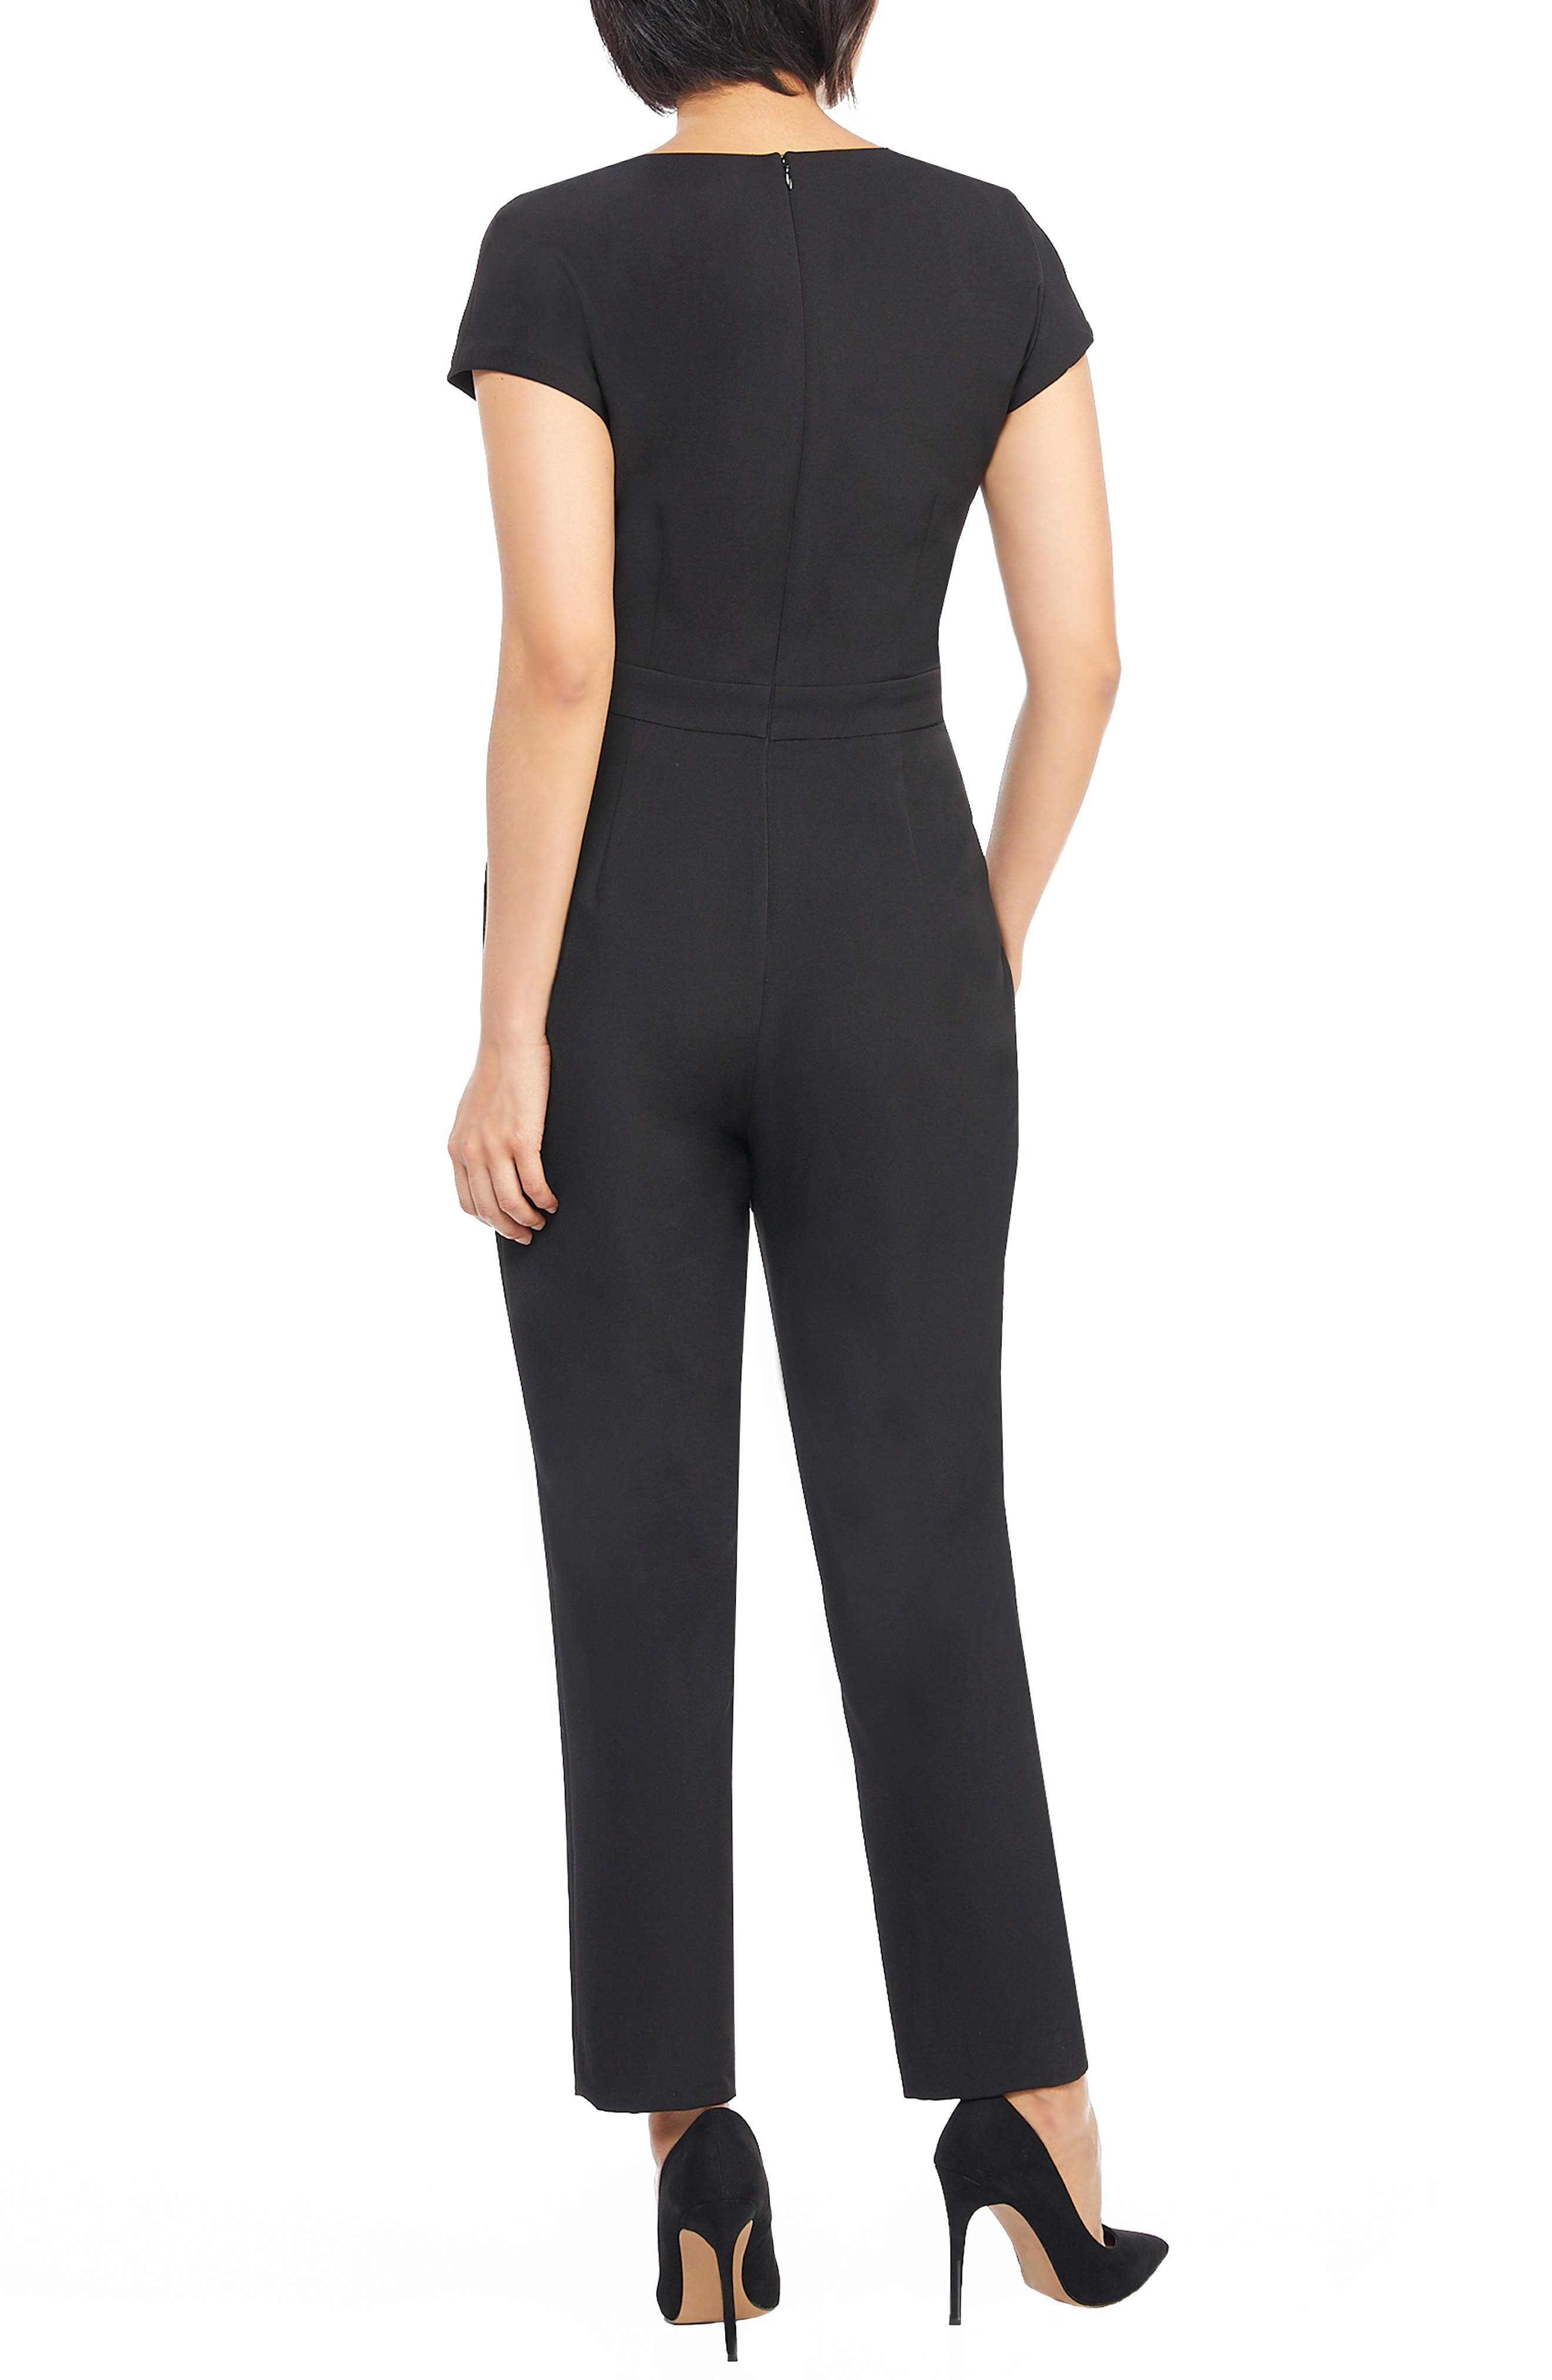 MAGGY LONDON, Crepe Jumpsuit, Alternate thumbnail 2, color, 001